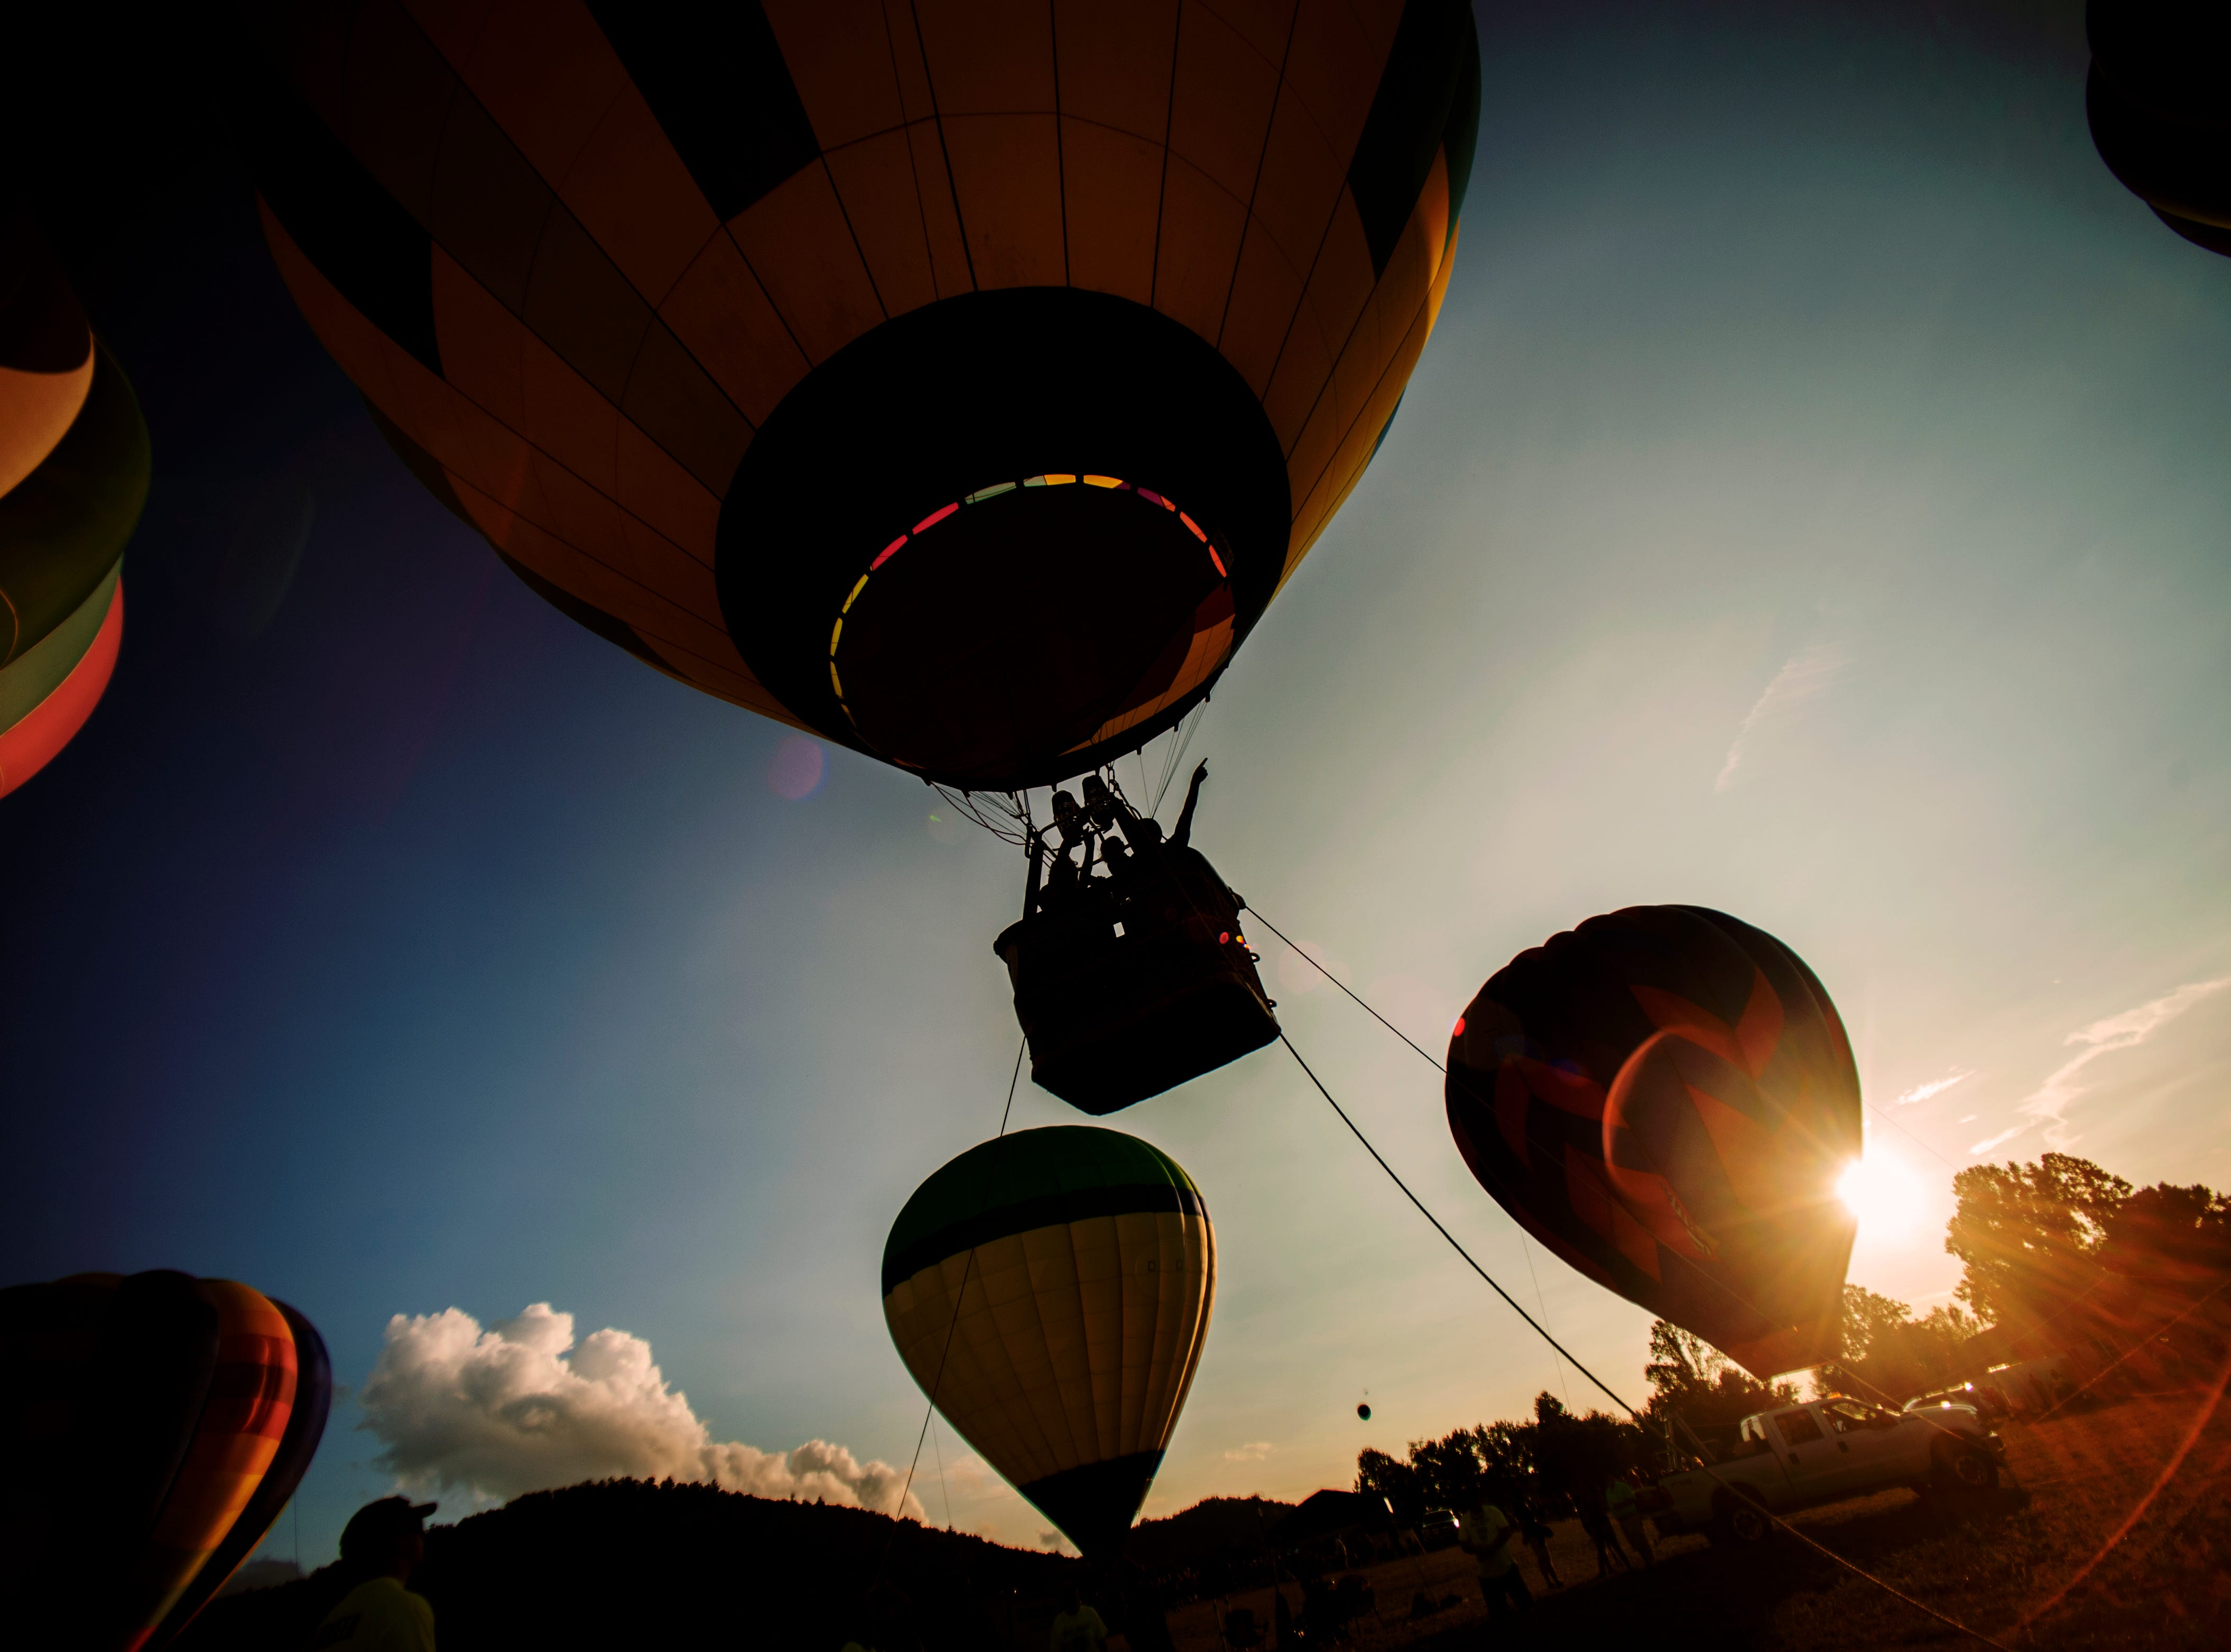 A balloon rider points from the basket at the second annual Smoky Mountain Balloon Festival in Townsend, Tennessee on Saturday, August 18, 2018. The festival featured several hot air balloons, food trucks, wine tasting and live entertainment.